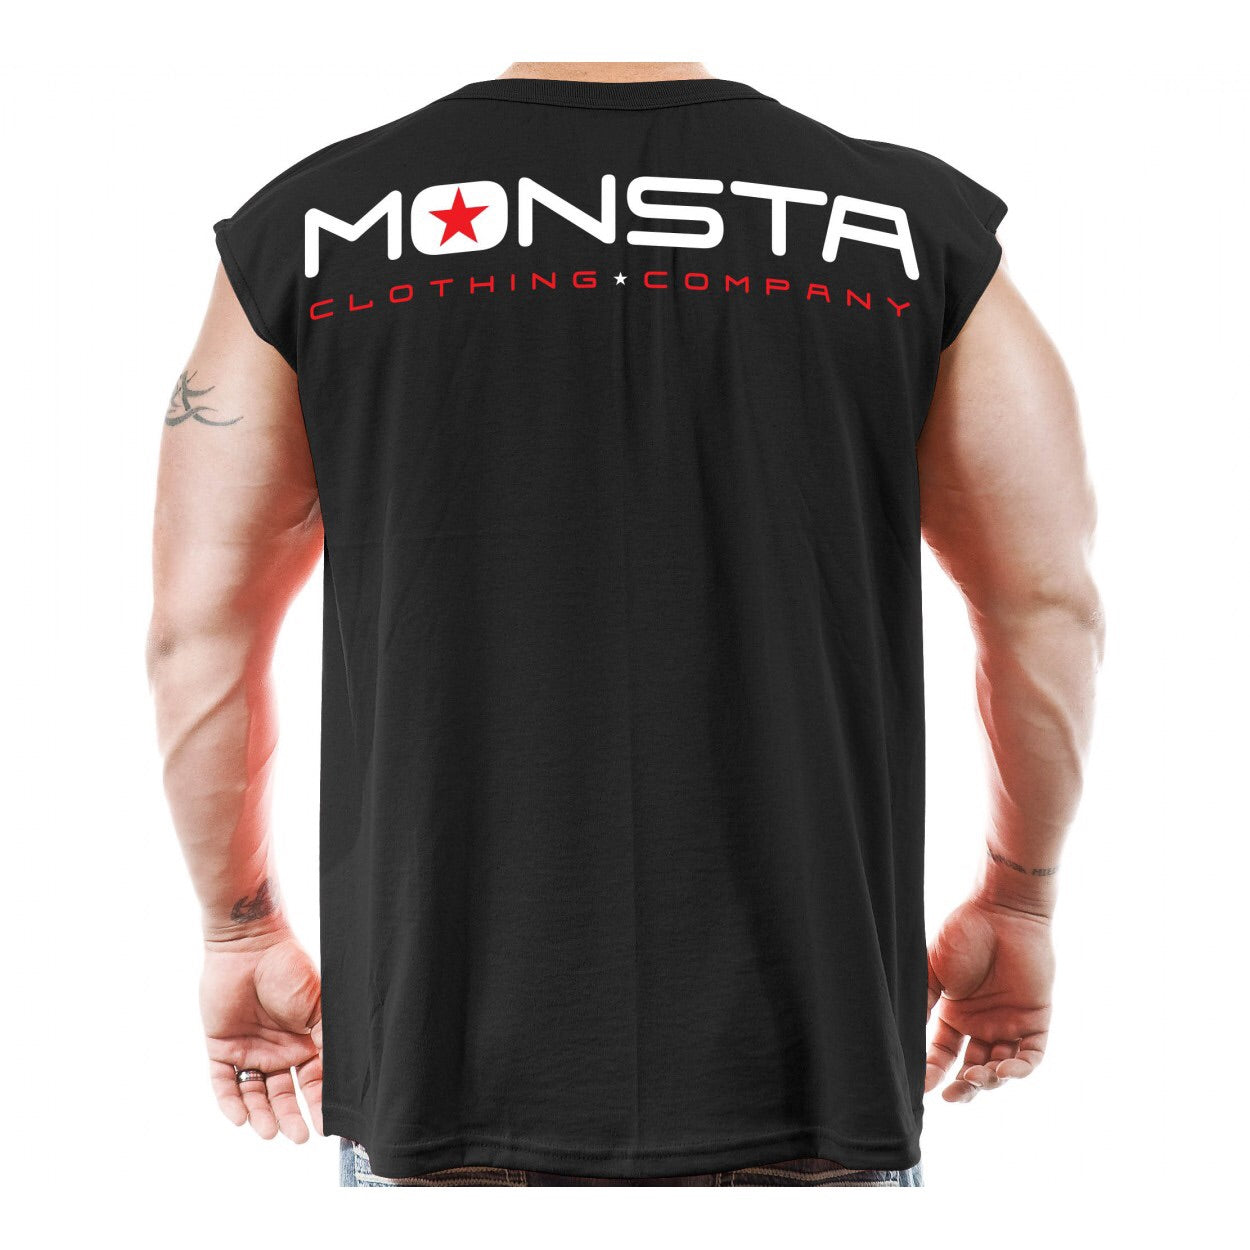 SLEEVELESS: TAP OR BLEED SLEEVELESS TANK-176 - Monsta Clothing Australia